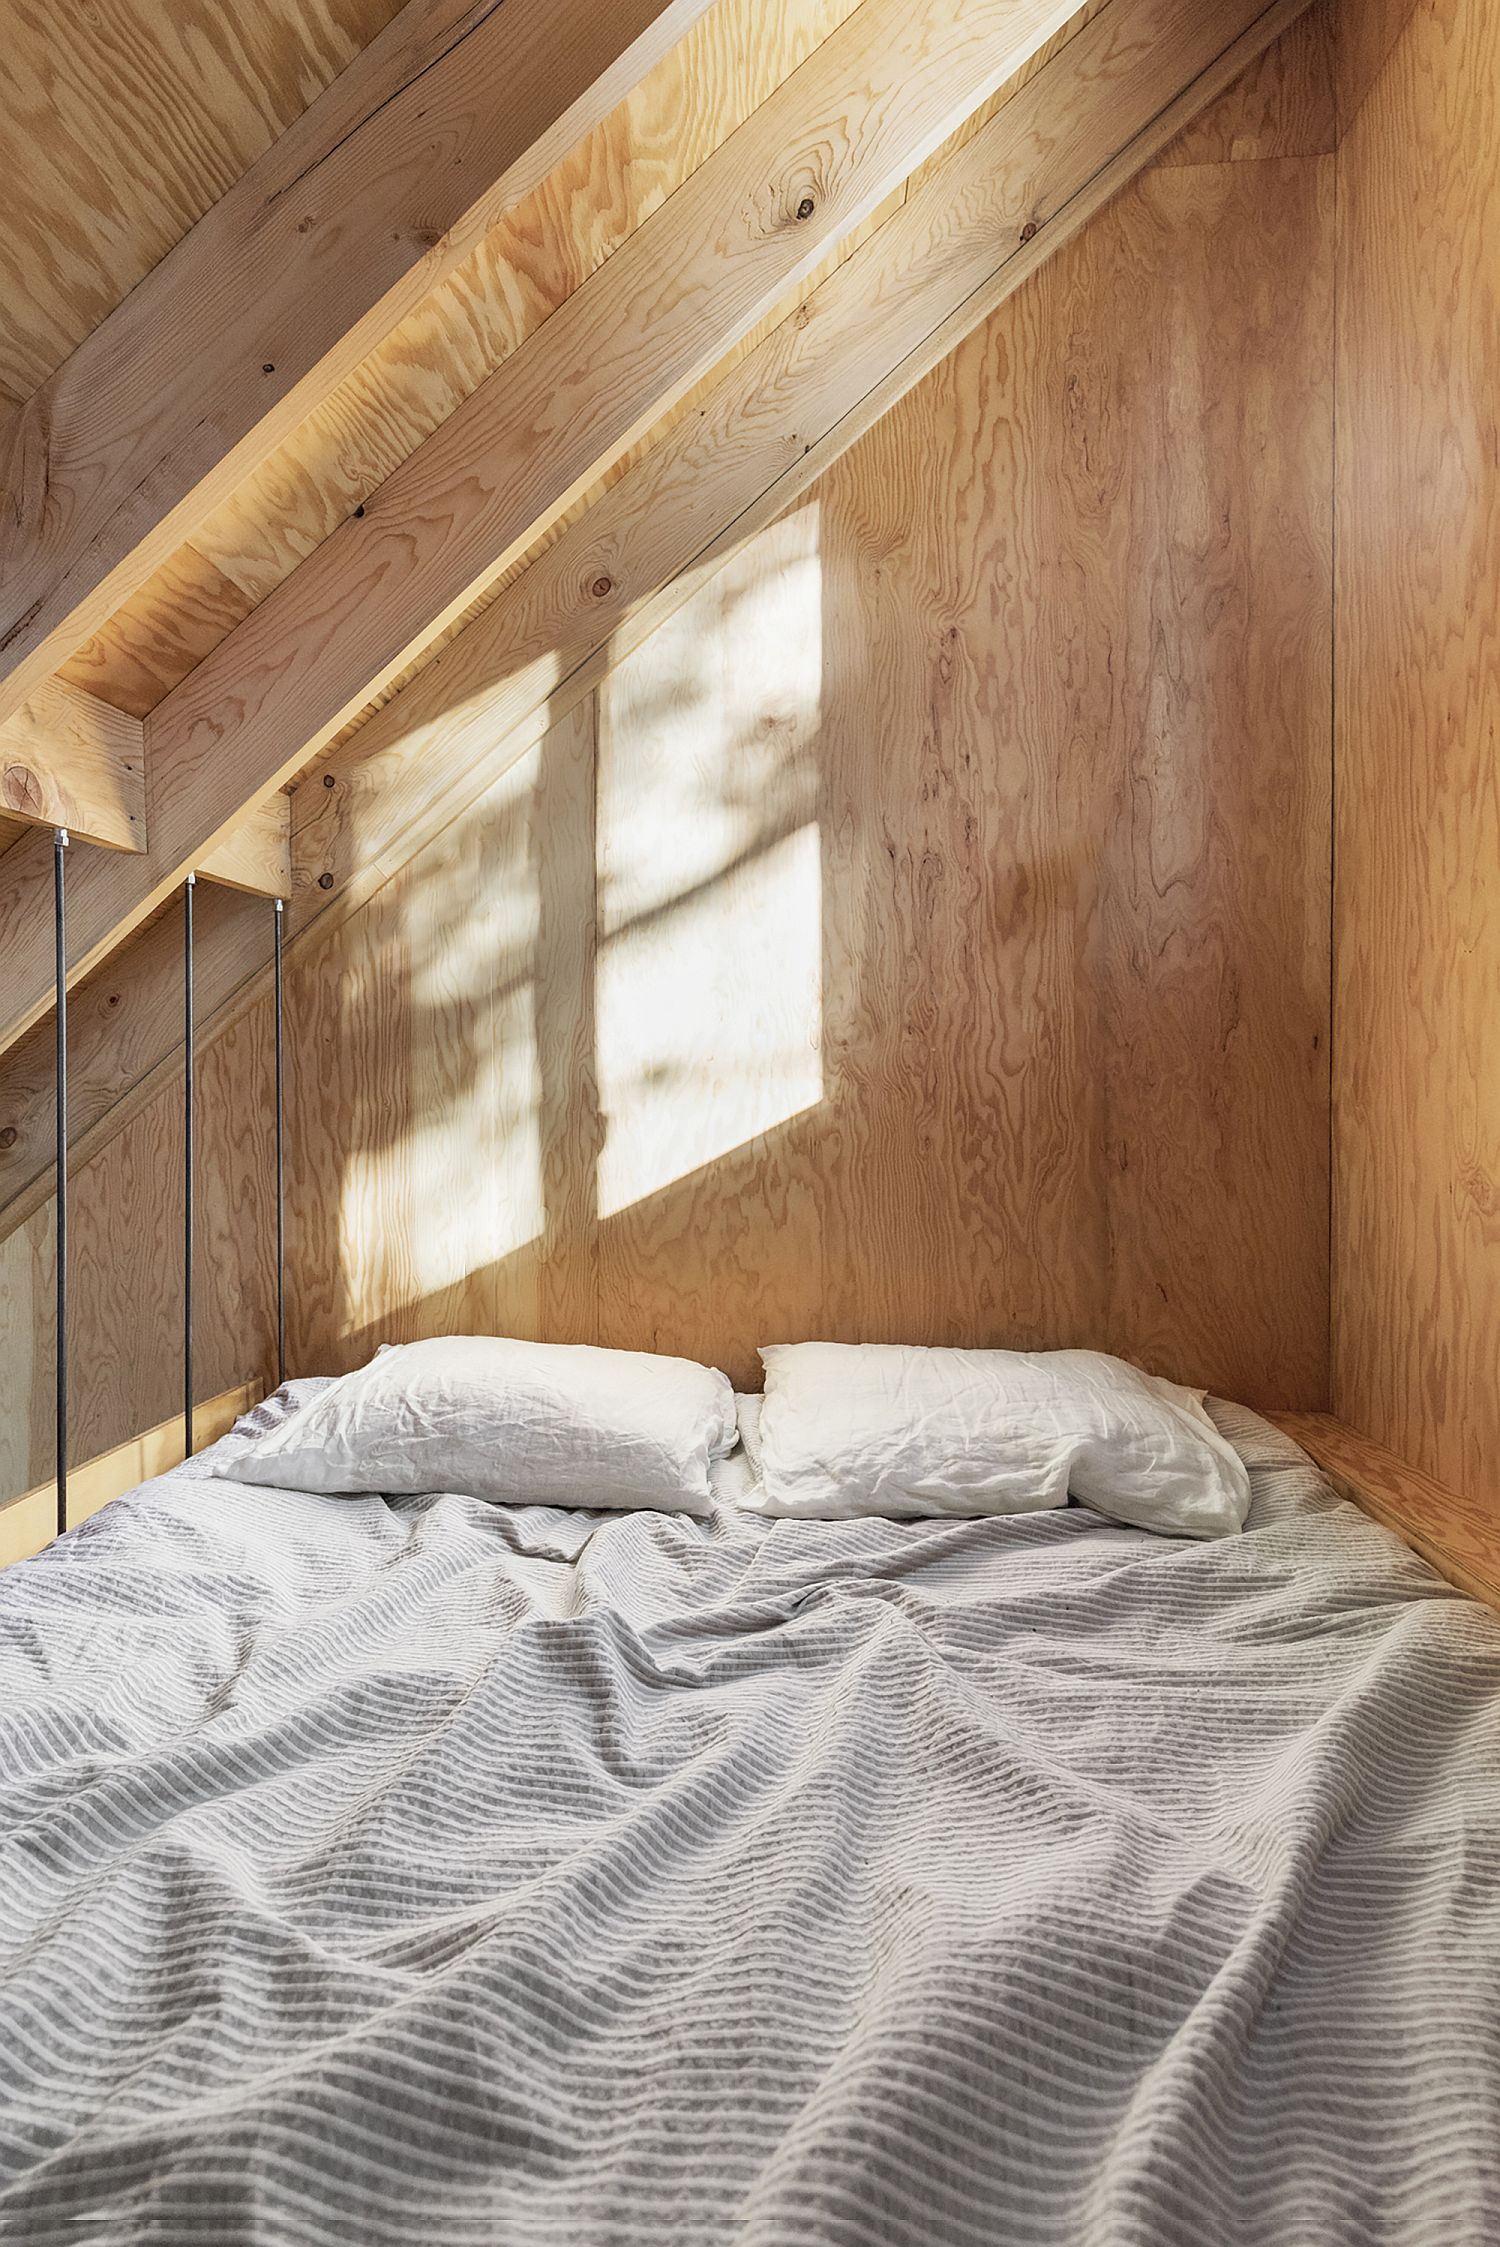 Upper level bedroom of the micro-shelter saves space with ease